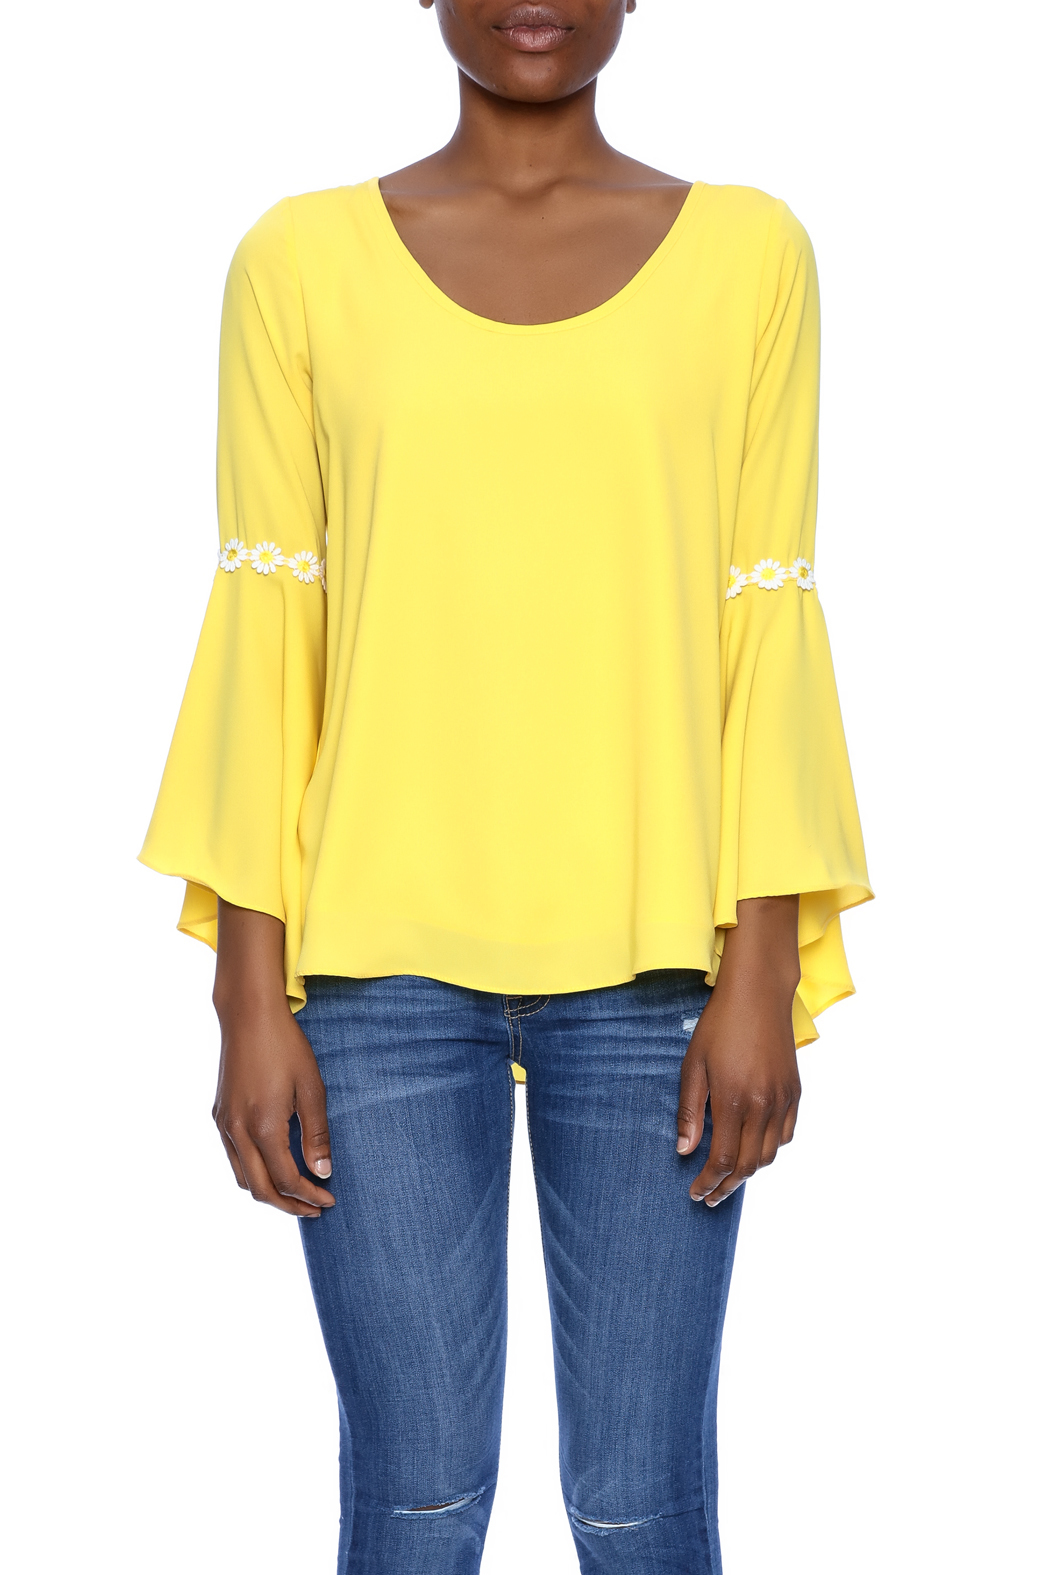 VaVa Yellow Blouse - Side Cropped Image